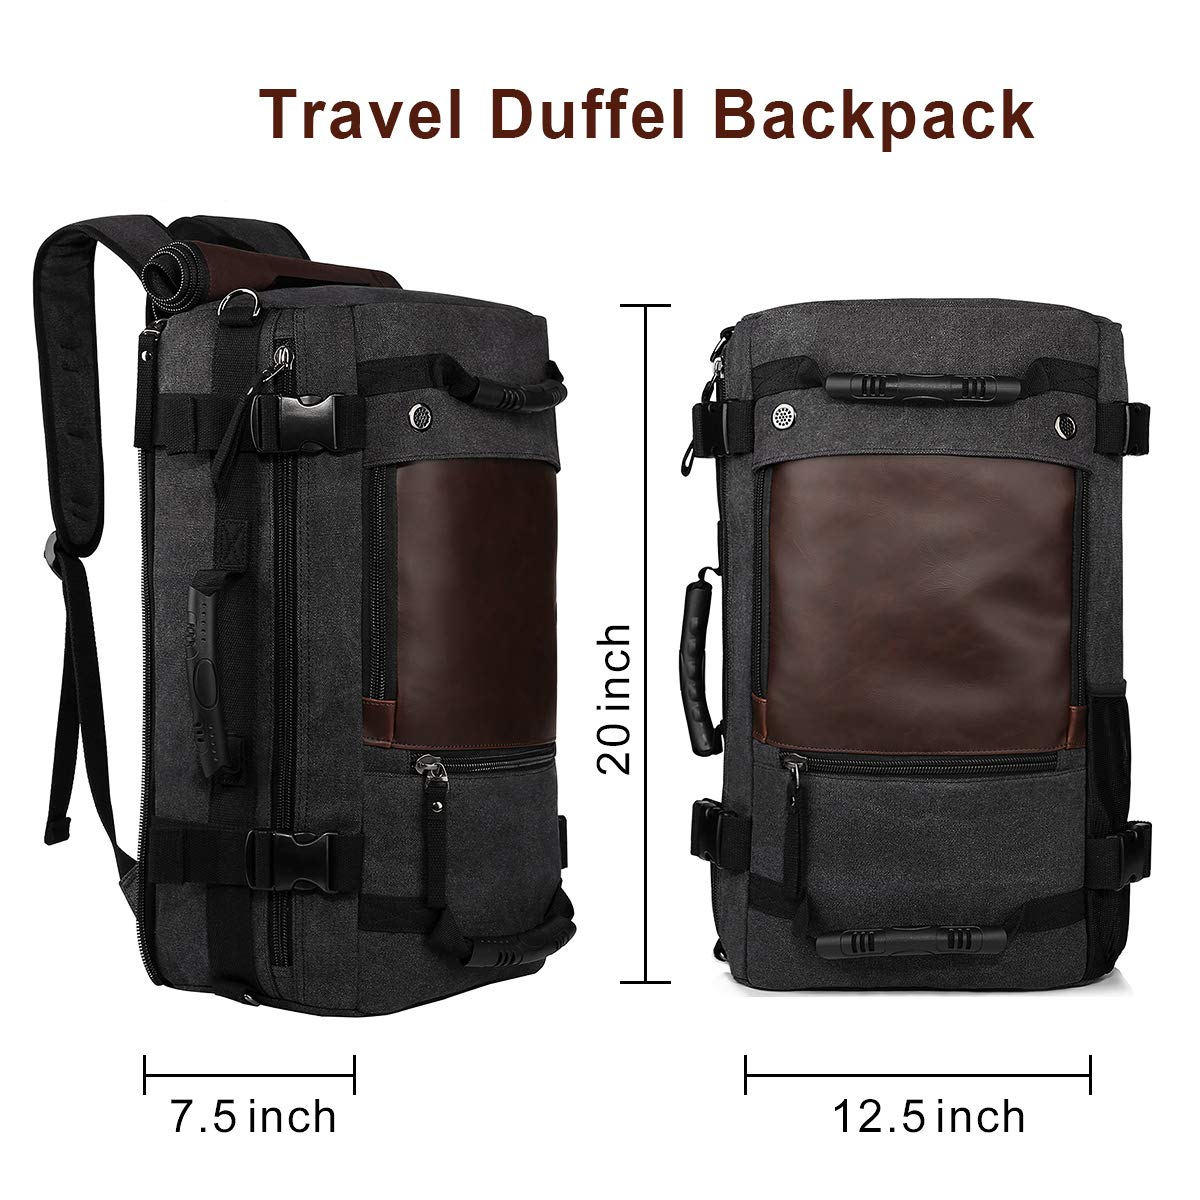 752f568124 Amazon.com: Ibagbar Canvas Backpack Travel Bag Hiking Bag Rucksack Duffel  Bag Laptop Backpack Computer Bag Camping Bag Sports Bag Weekend Bag  Briefcase Bag ...